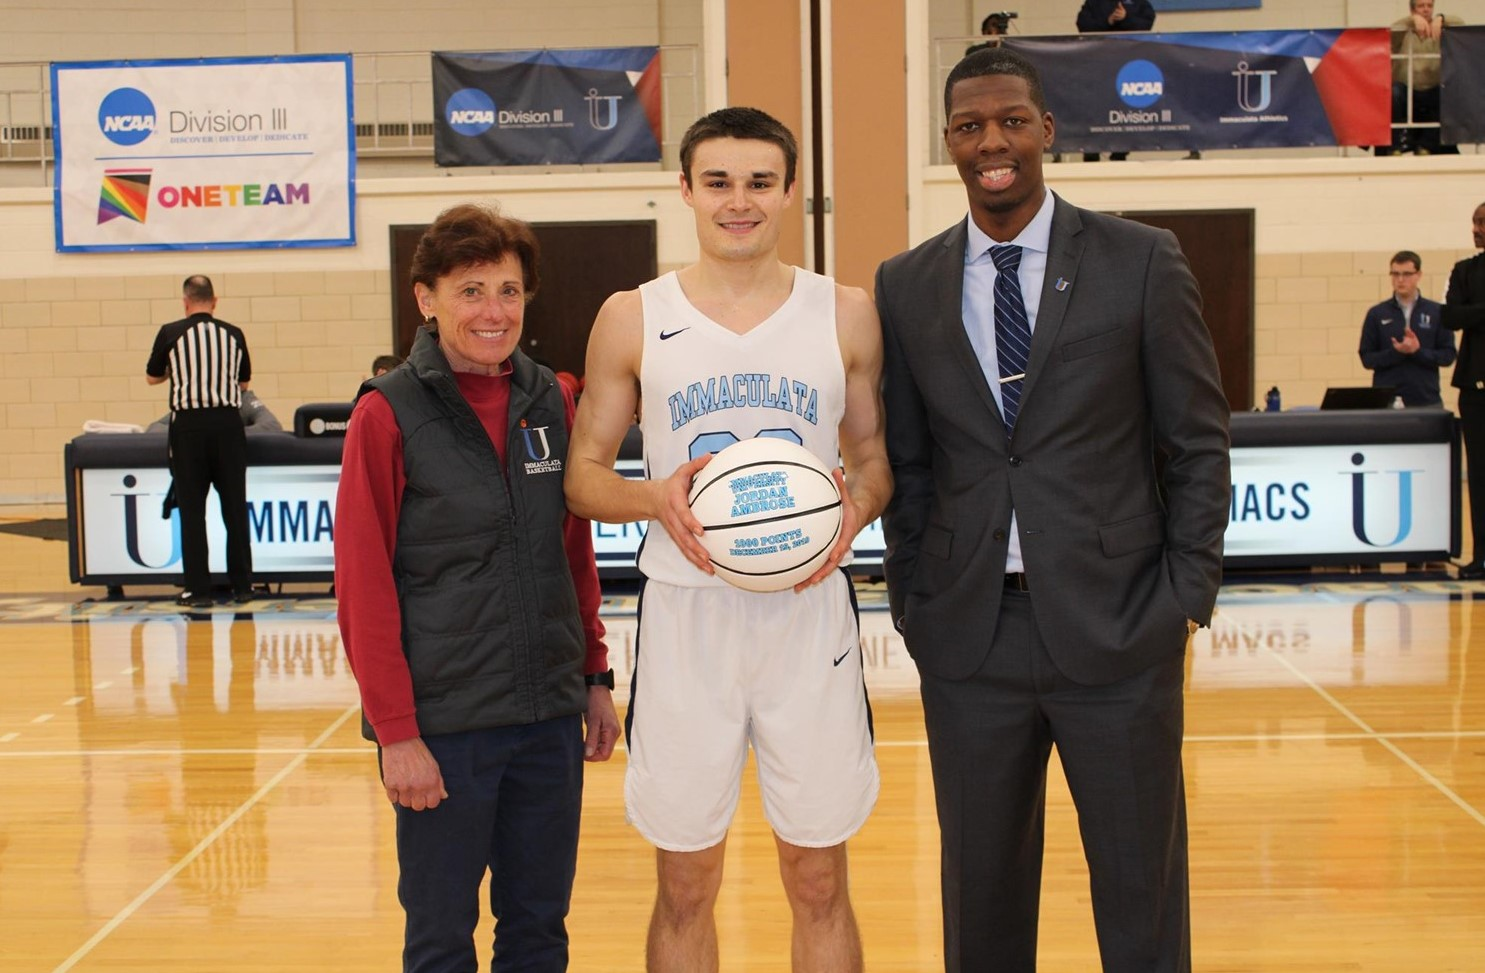 Thorndale Native Named Immaculata's Most Outstanding Male Senior Athlete of the Year